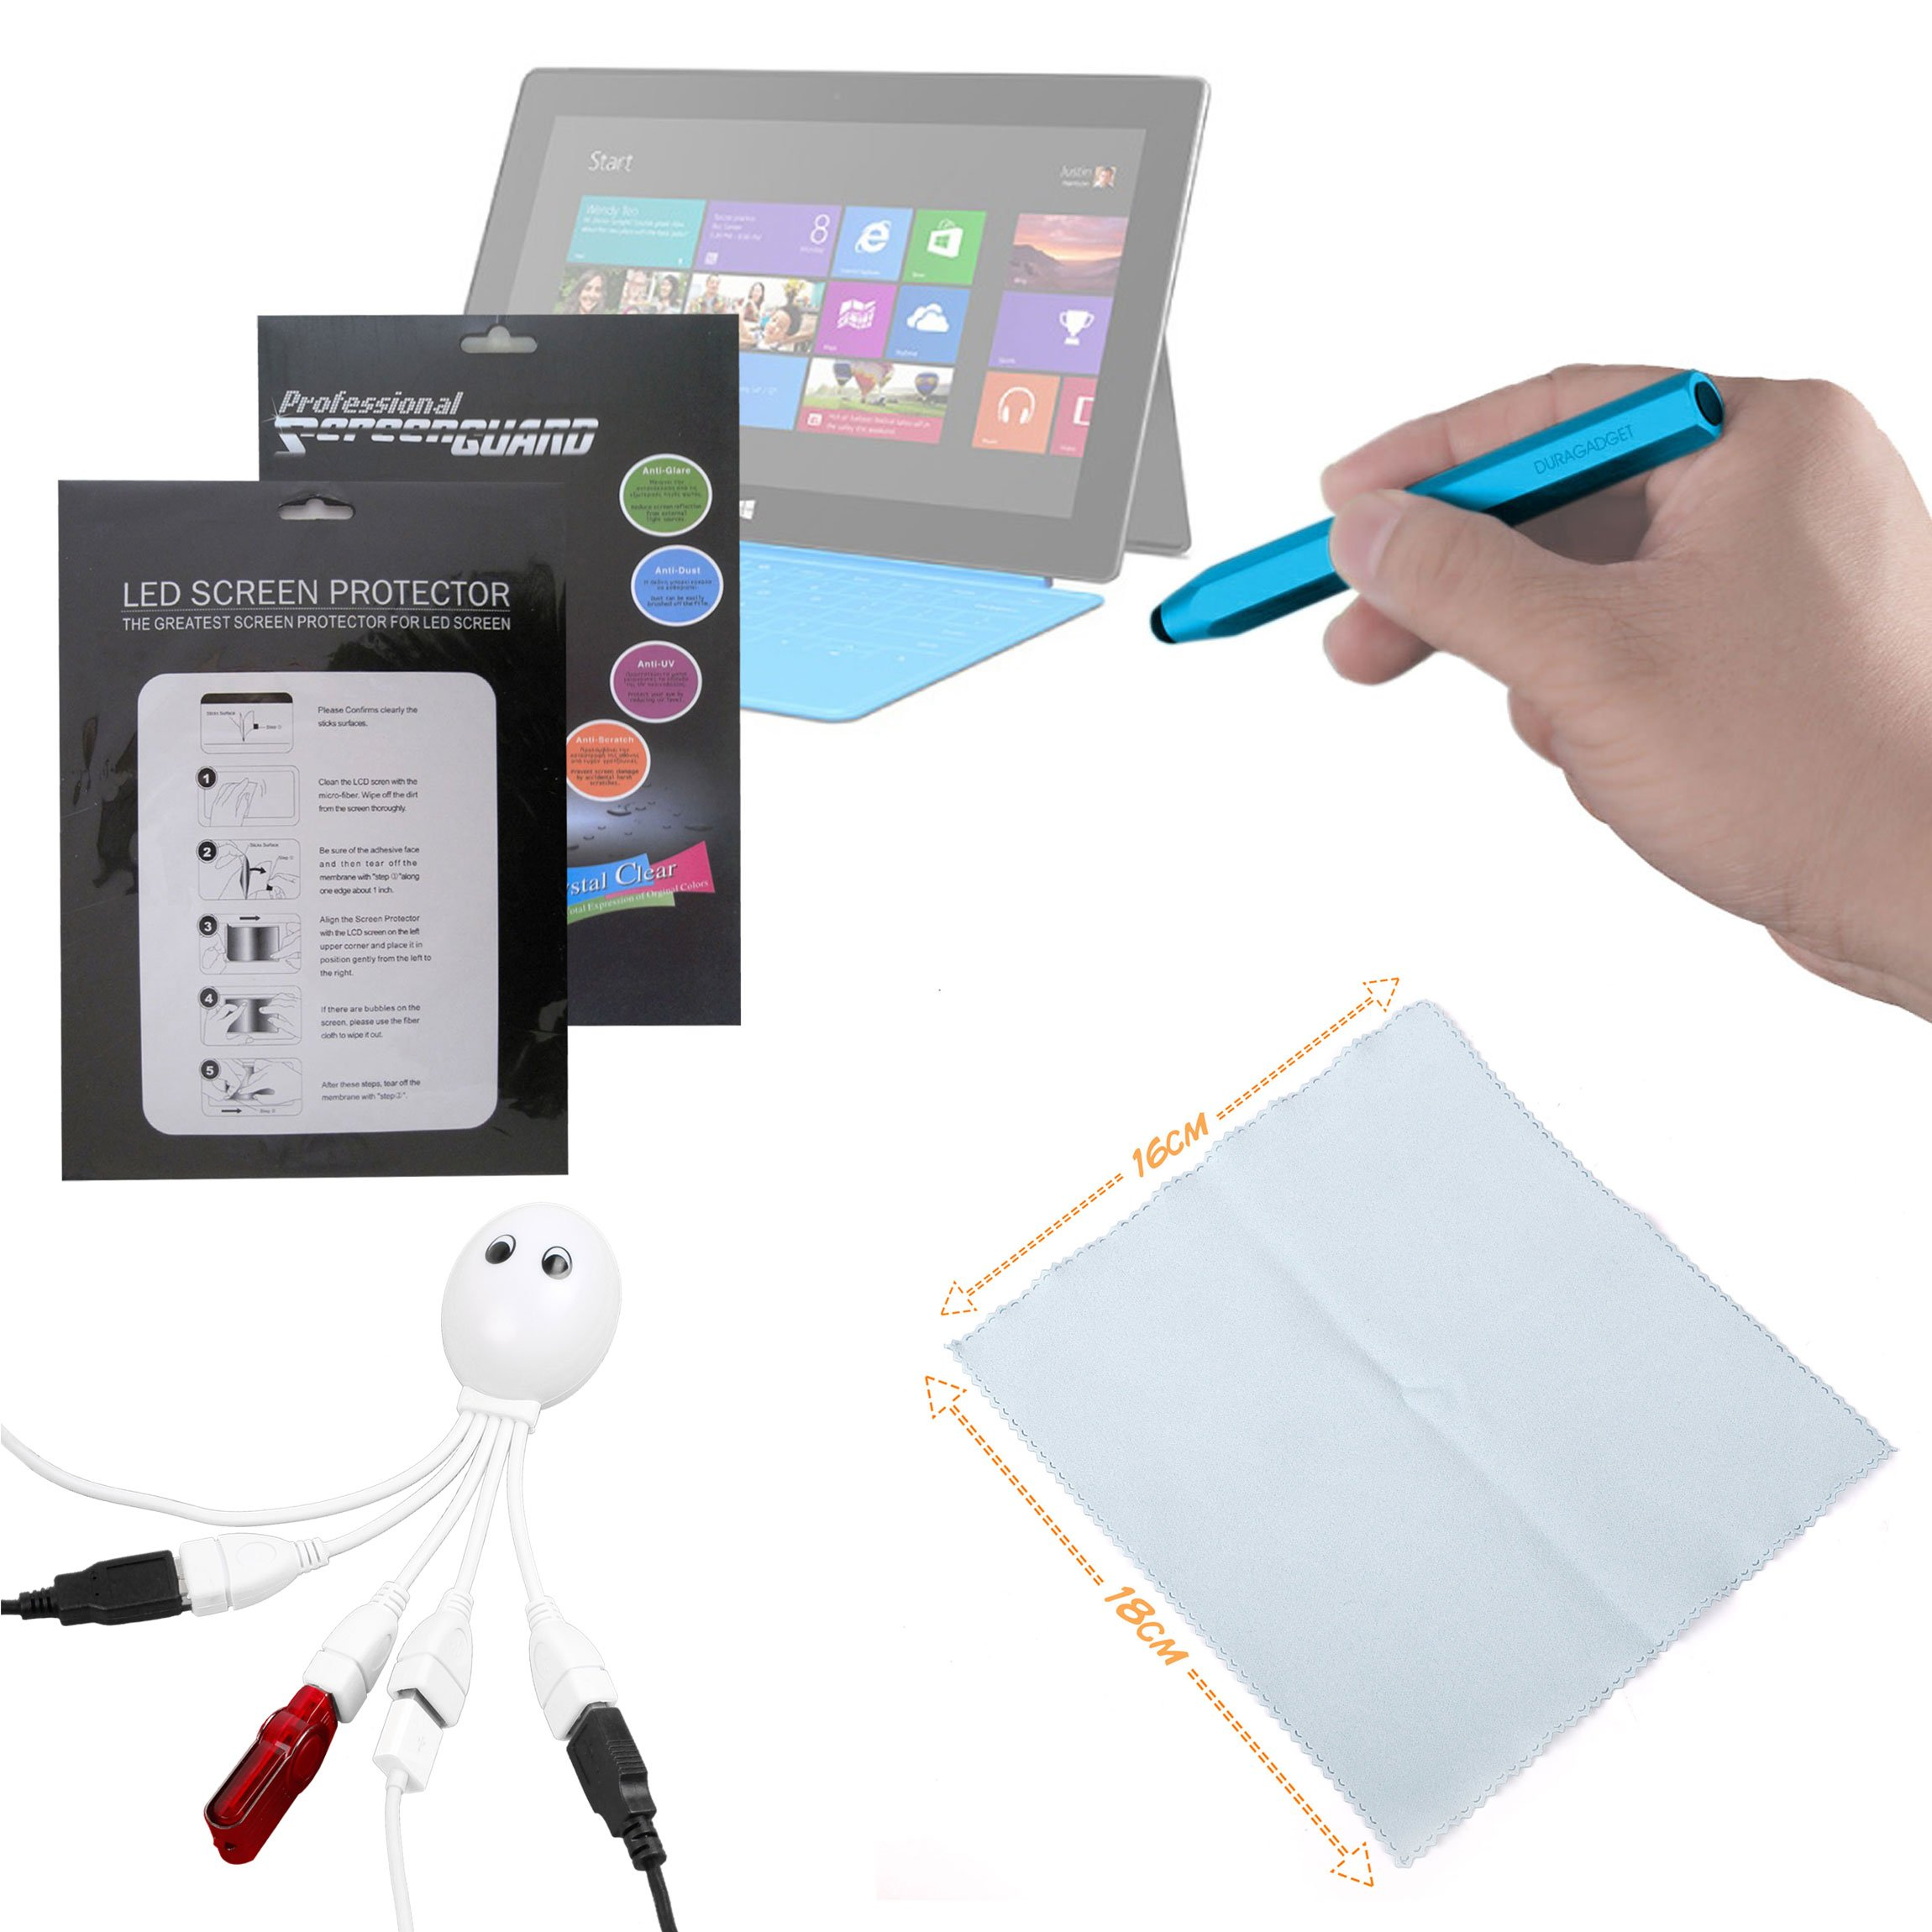 DURAGADGET Microsoft Surface Windows RT Accessory Kit: High Quality Microsoft Surface (8GB, 16GB, 32GB, 64GB, 128GB) 10.6'' Clear Screen Protector + BONUS : Blue Chunky Stylus + Cleaning Cloth + Octopus USB Hub